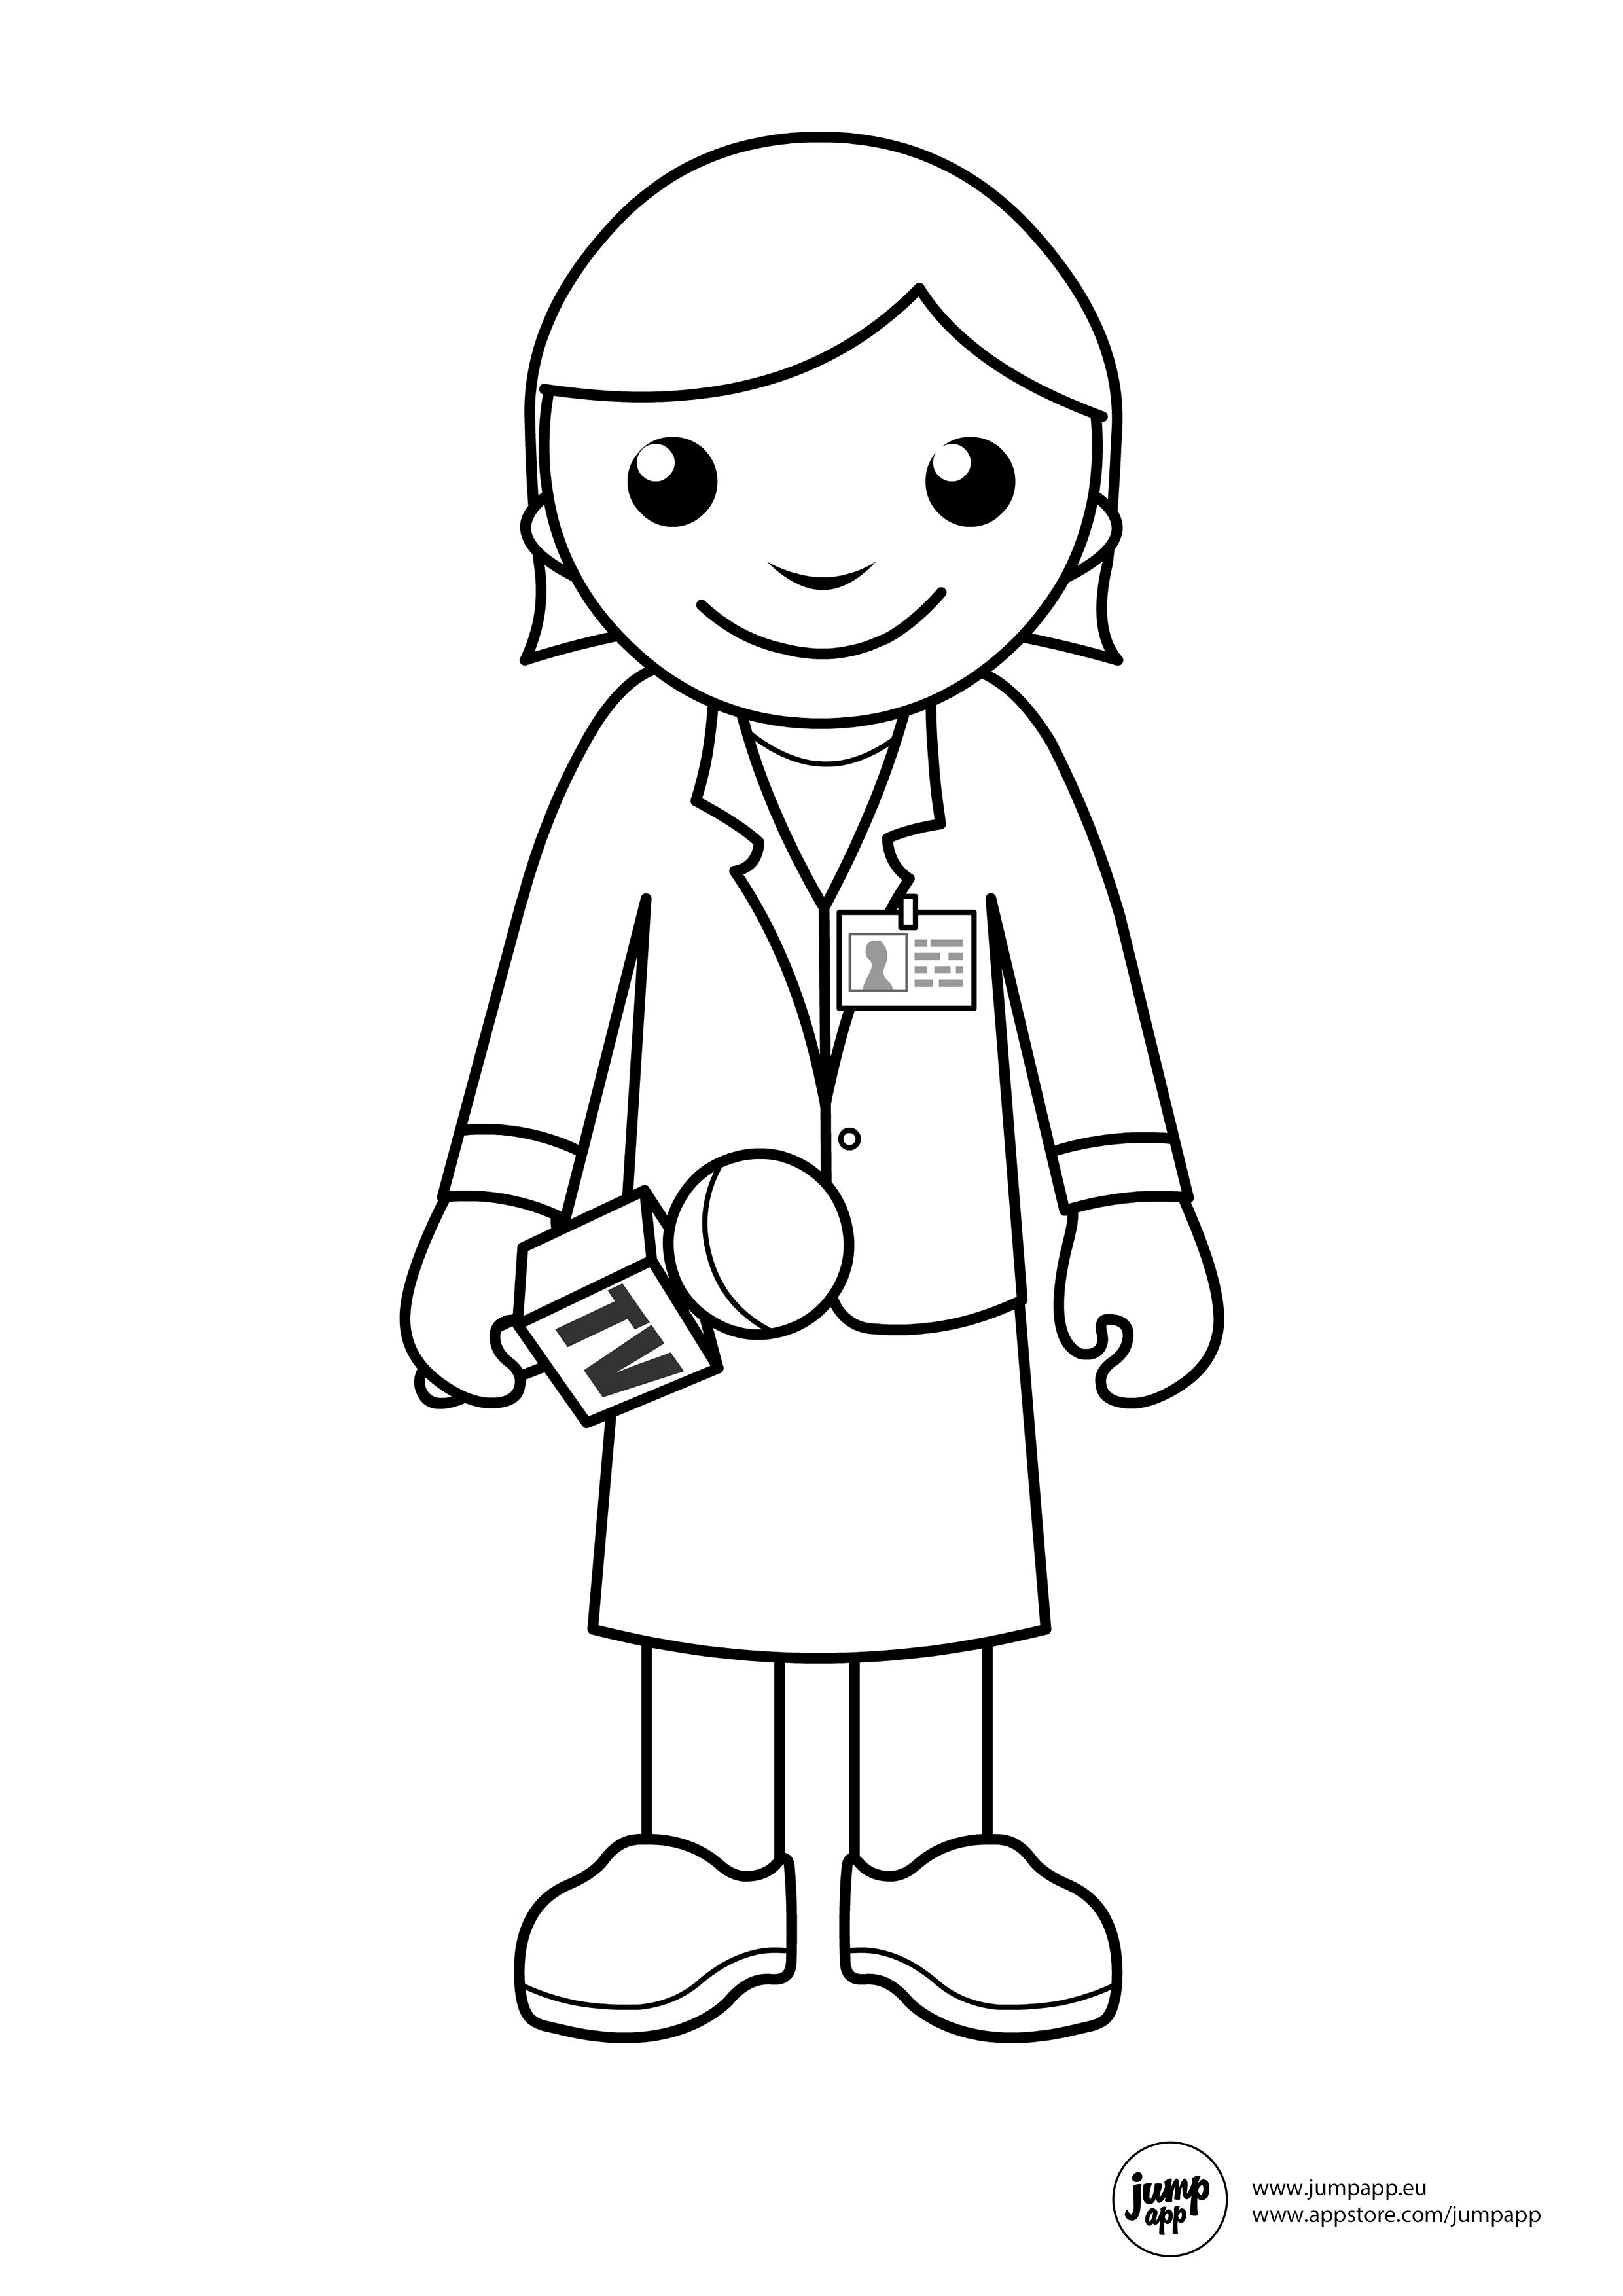 reporter | Printable Coloring Pages | Pinterest